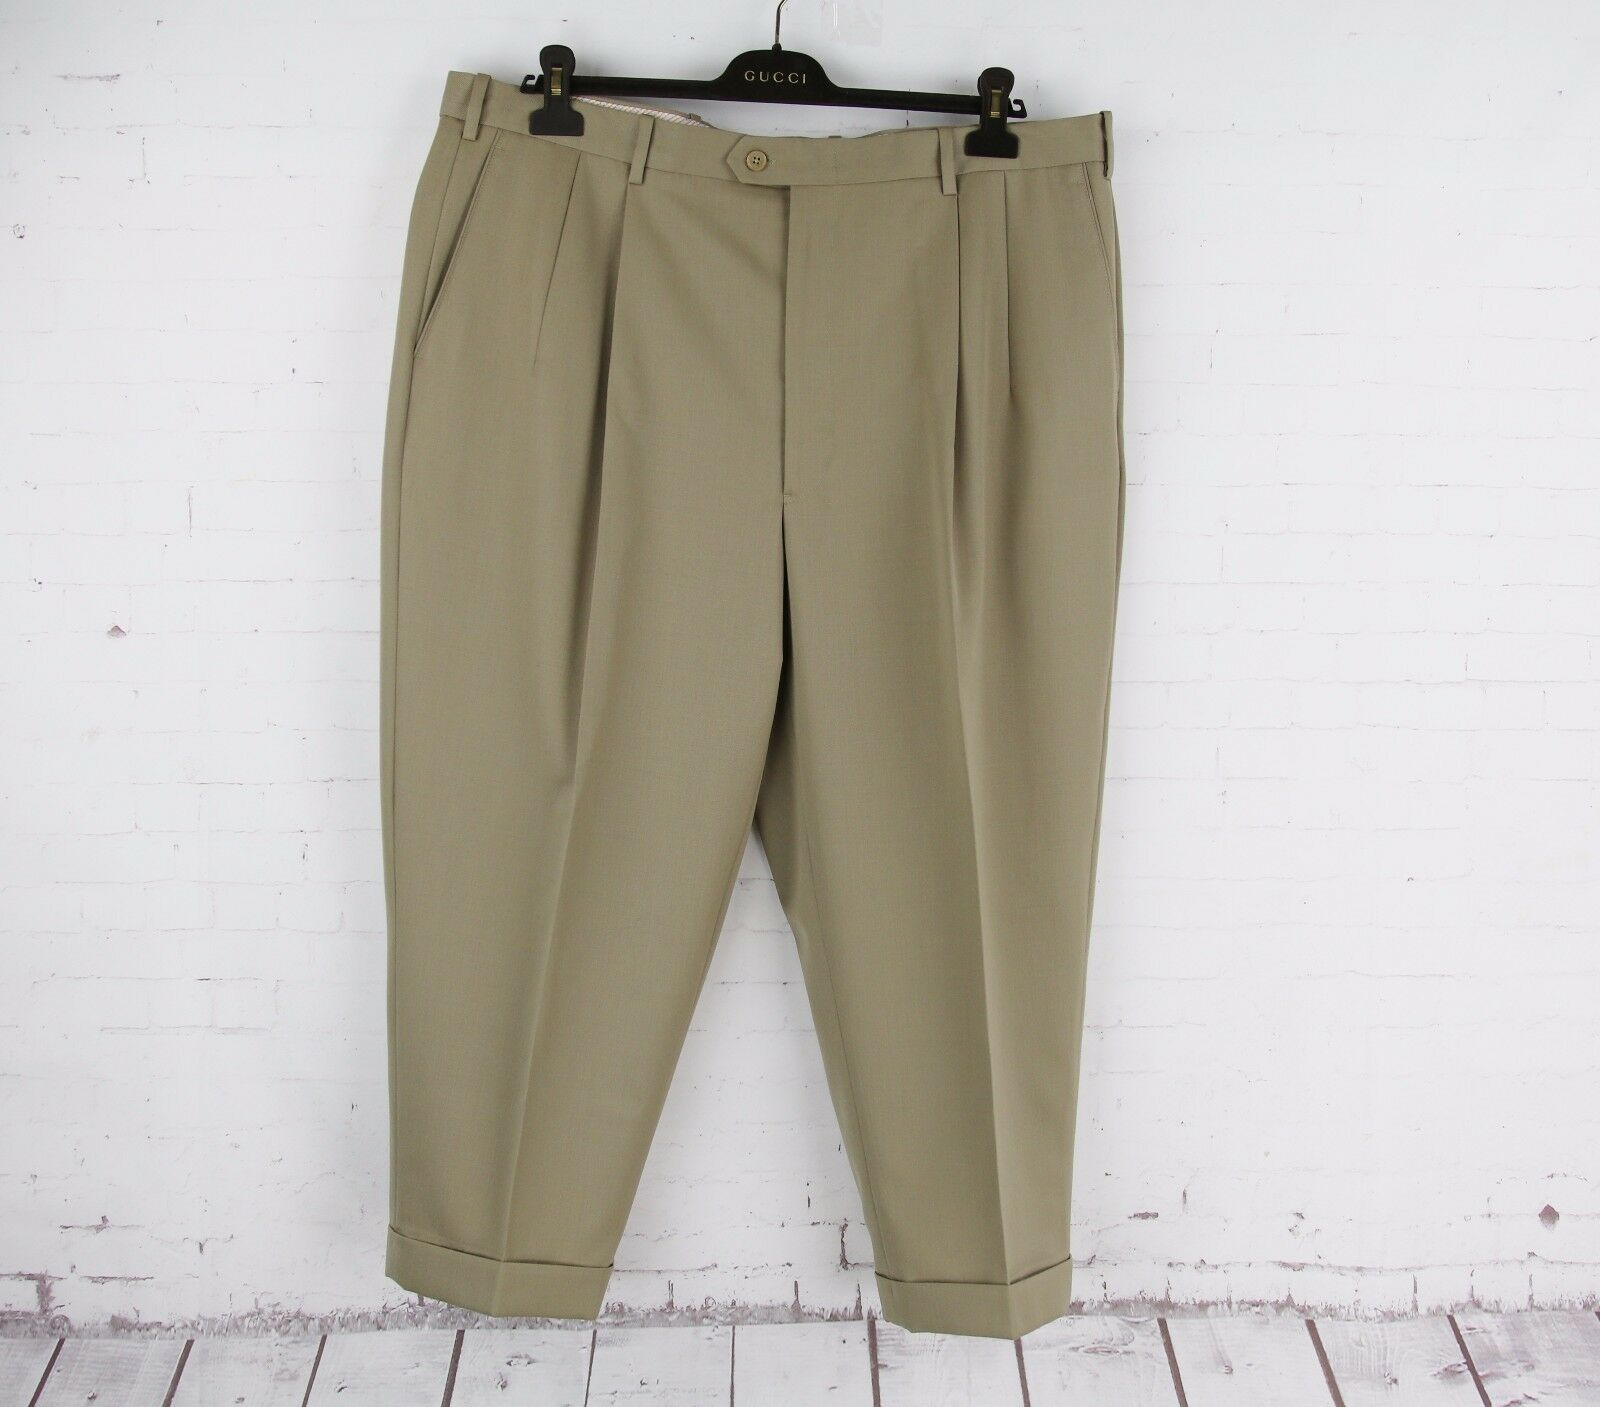 JB BRITCHES (40 41x24) Mens Khaki Worsted Wool WINSTON Pleat Cuff Dress Pants